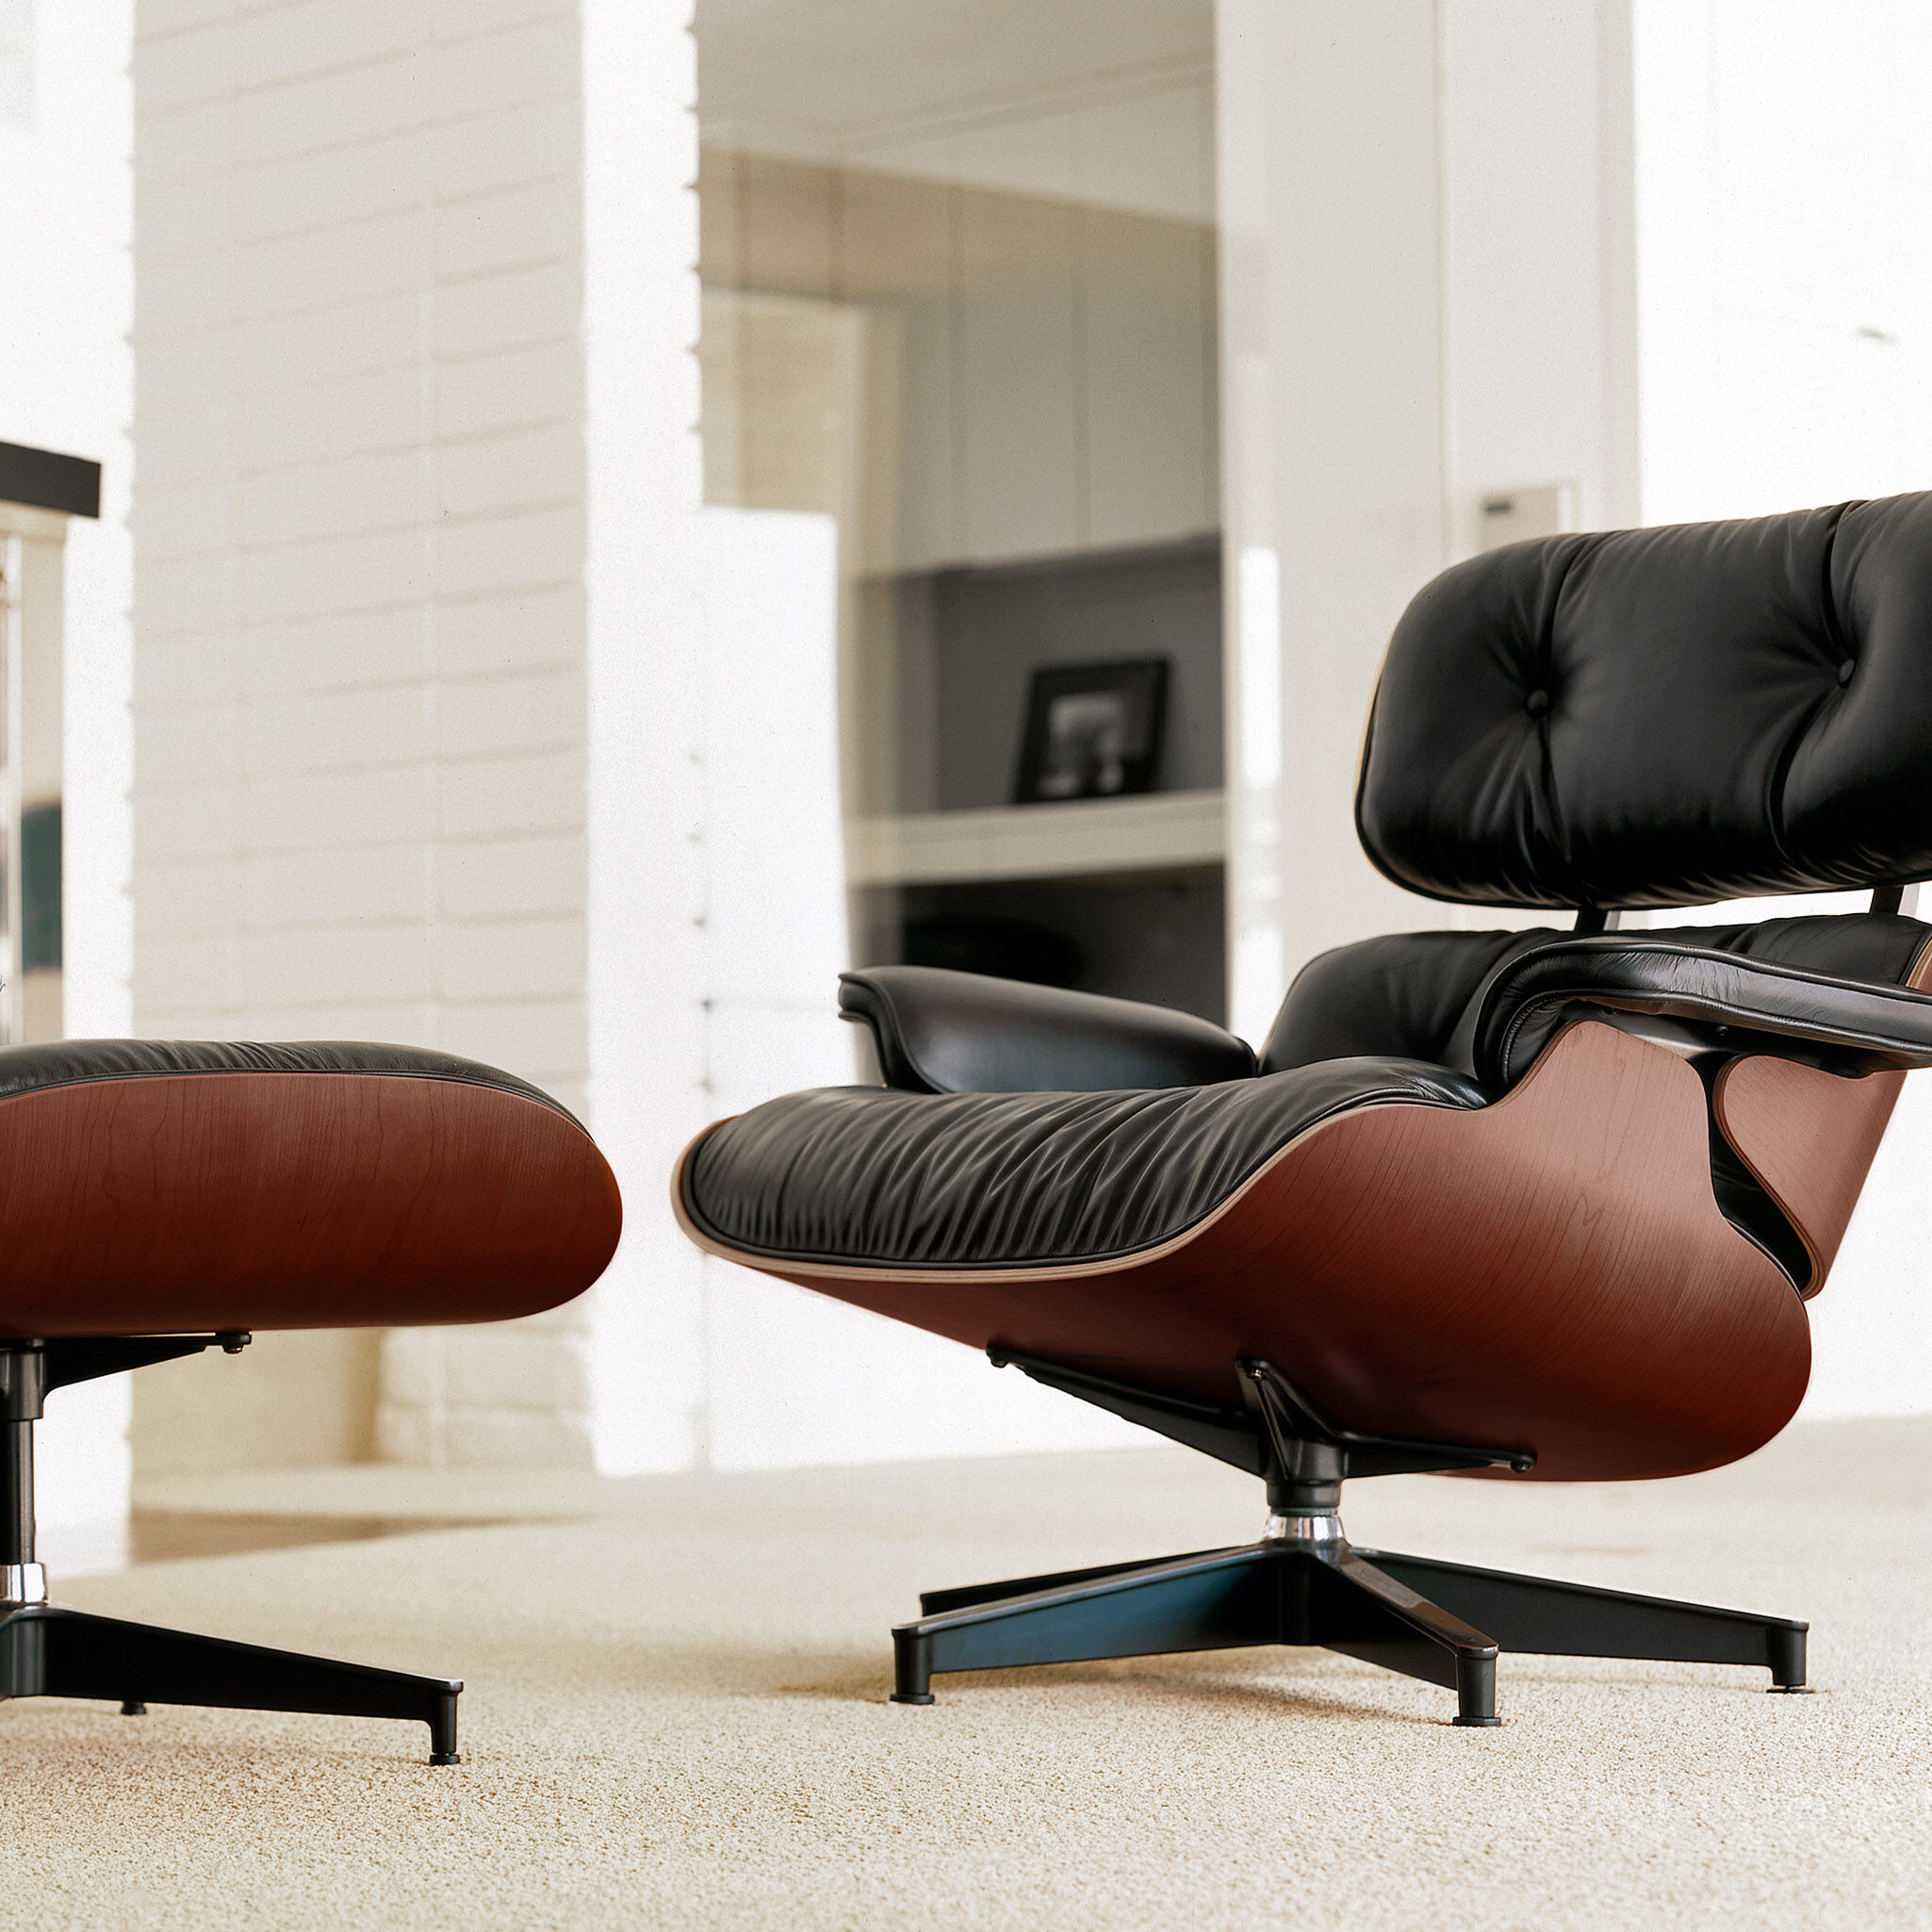 Lounge Chair With Ottoman Eames Lounge Chair With Ottoman Moma Design Store